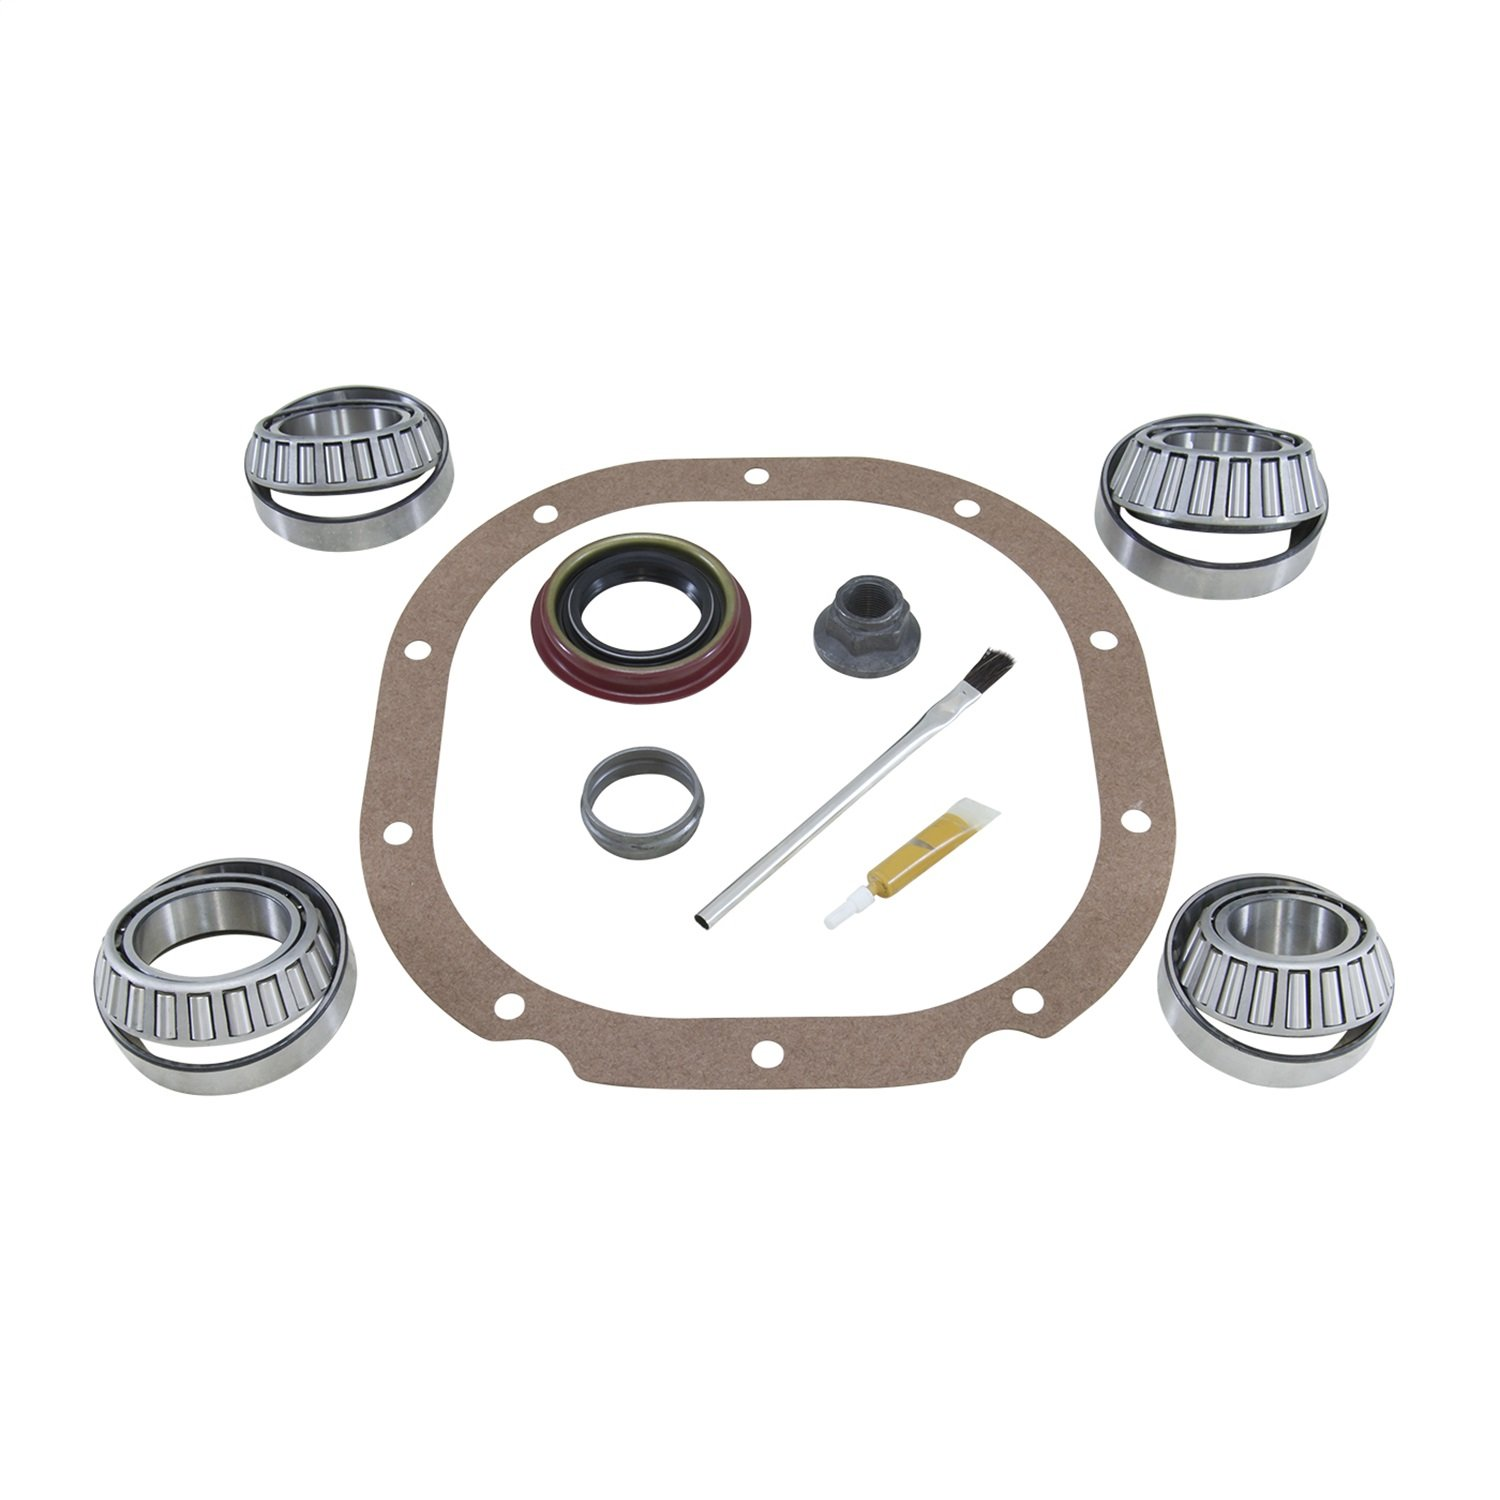 USA Standard Gear (ZBKF8.8) Bearing Kit for Ford 8.8'' Differential